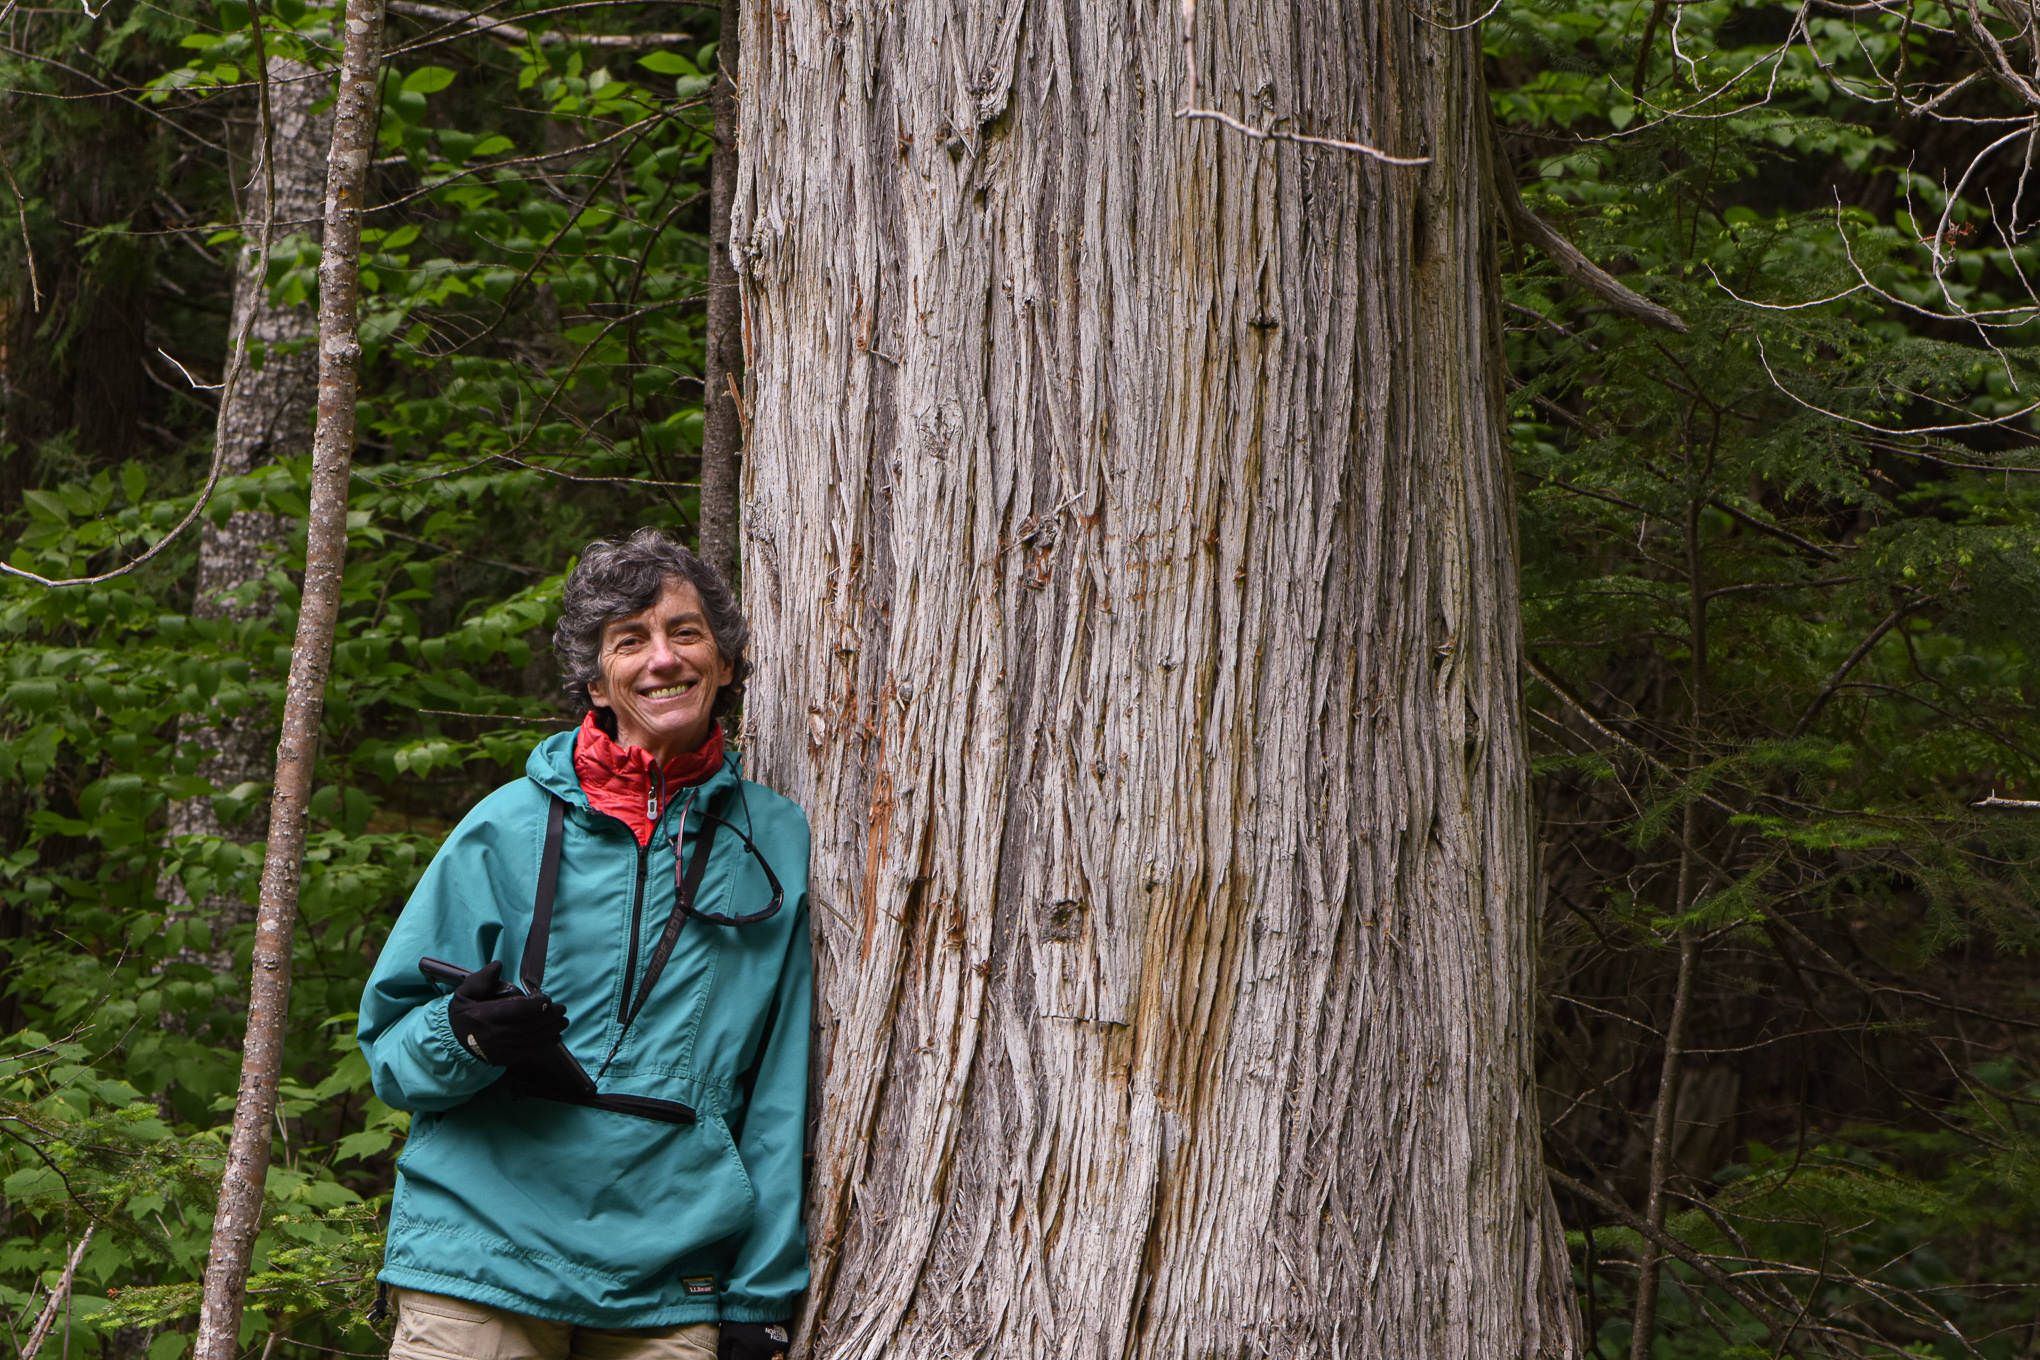 A woman leans against a very large tree.